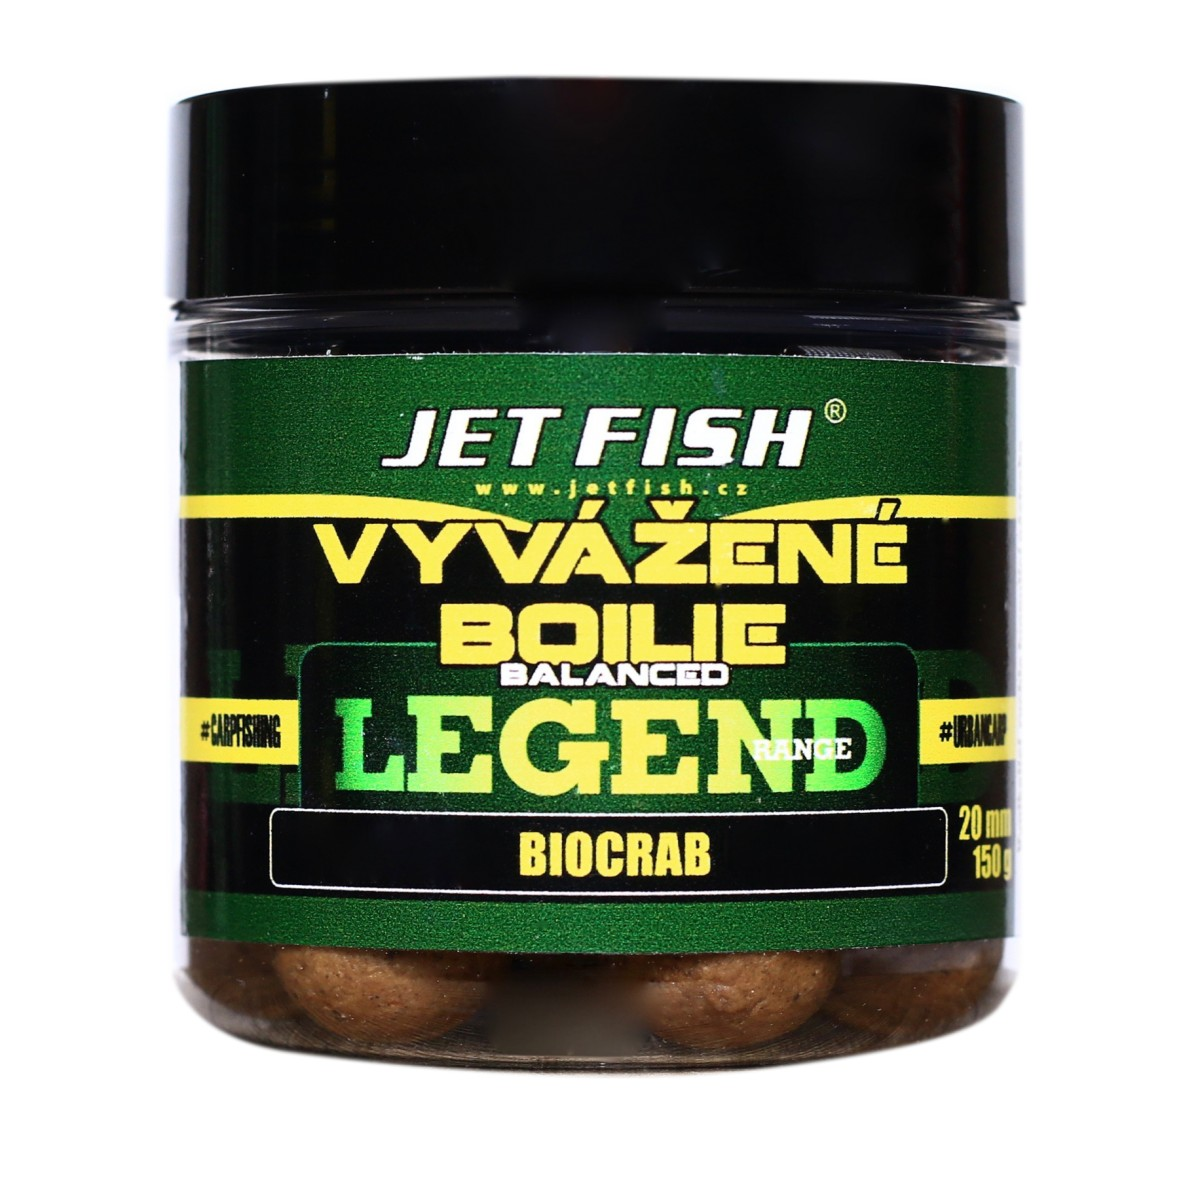 LEGEND Vyvážený boilies PROTEIN BIRD-WINTER FRUIT 20mm 130g